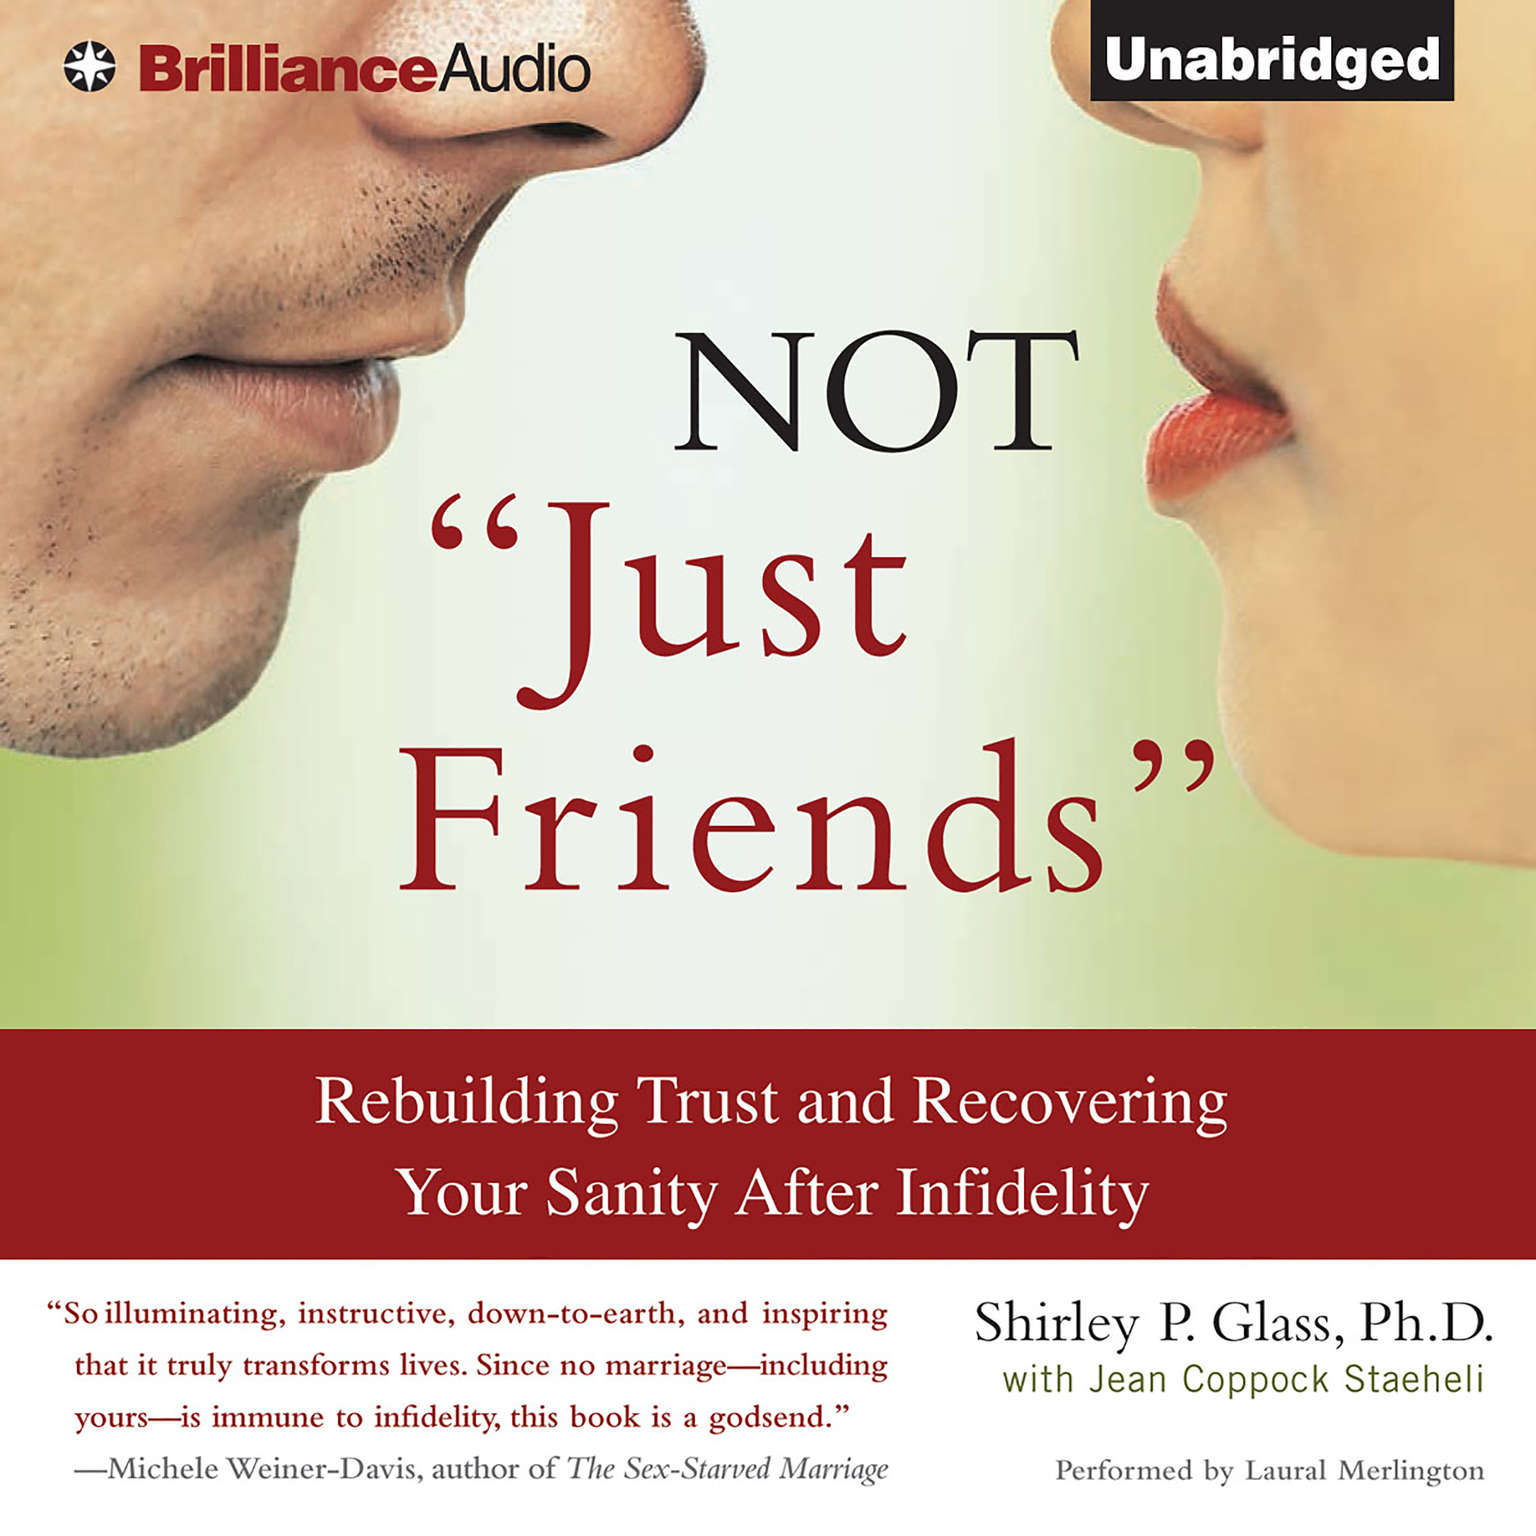 Not Just Friends: Rebuilding Trust and Recovering Your Sanity After Infidelity Audiobook, by Shirley P. Glass